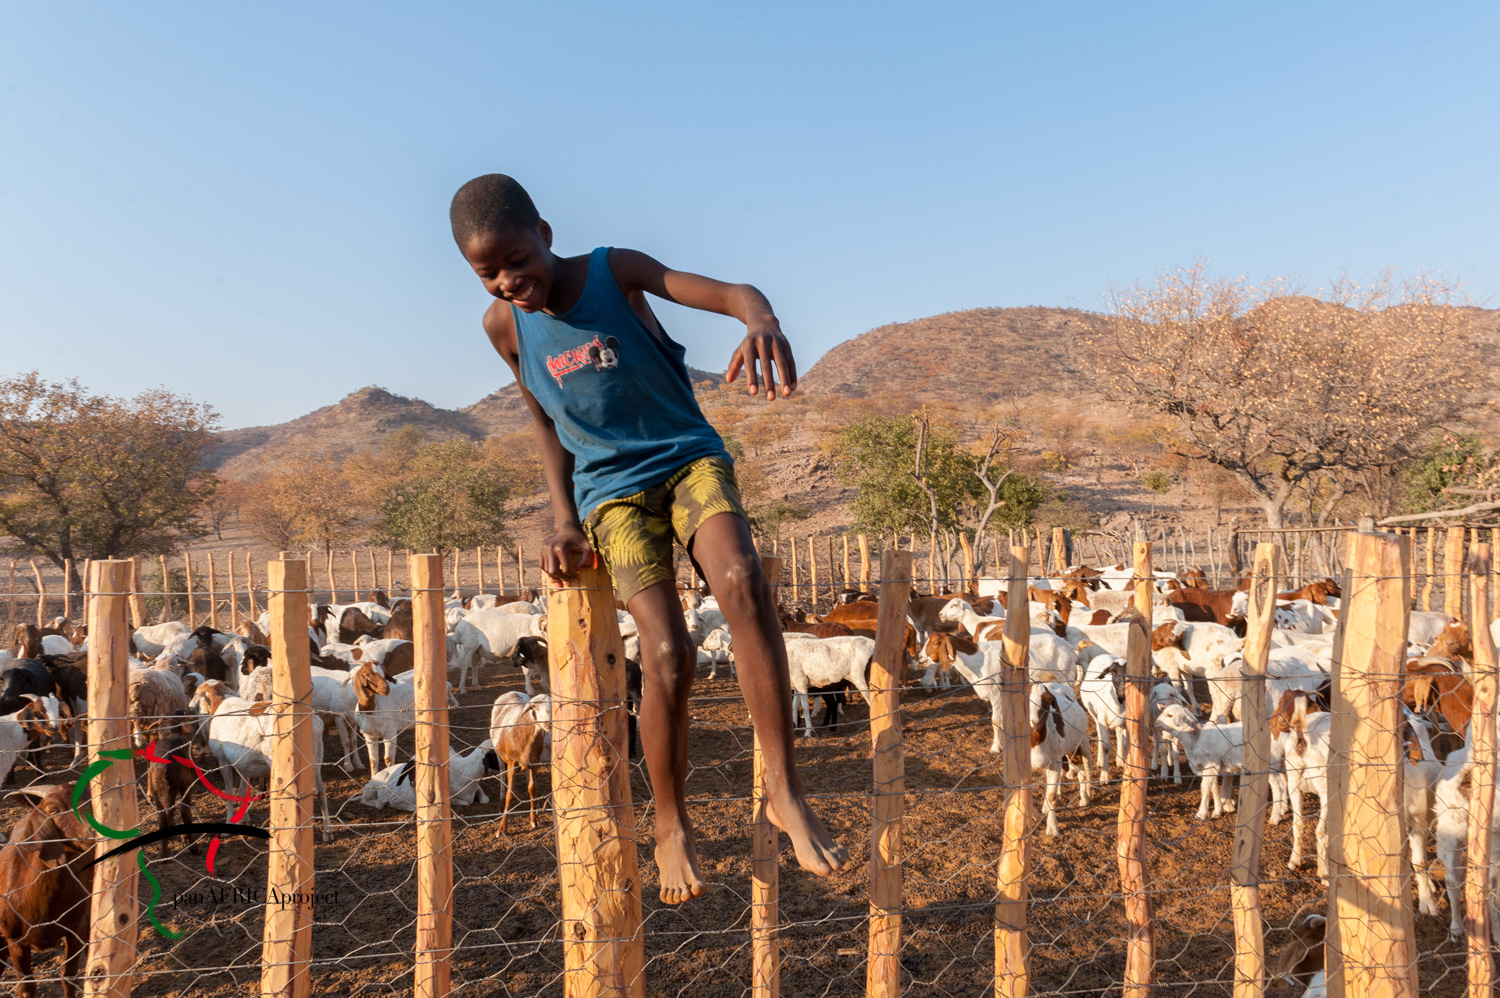 Child climbing over a fence with goats in the background.